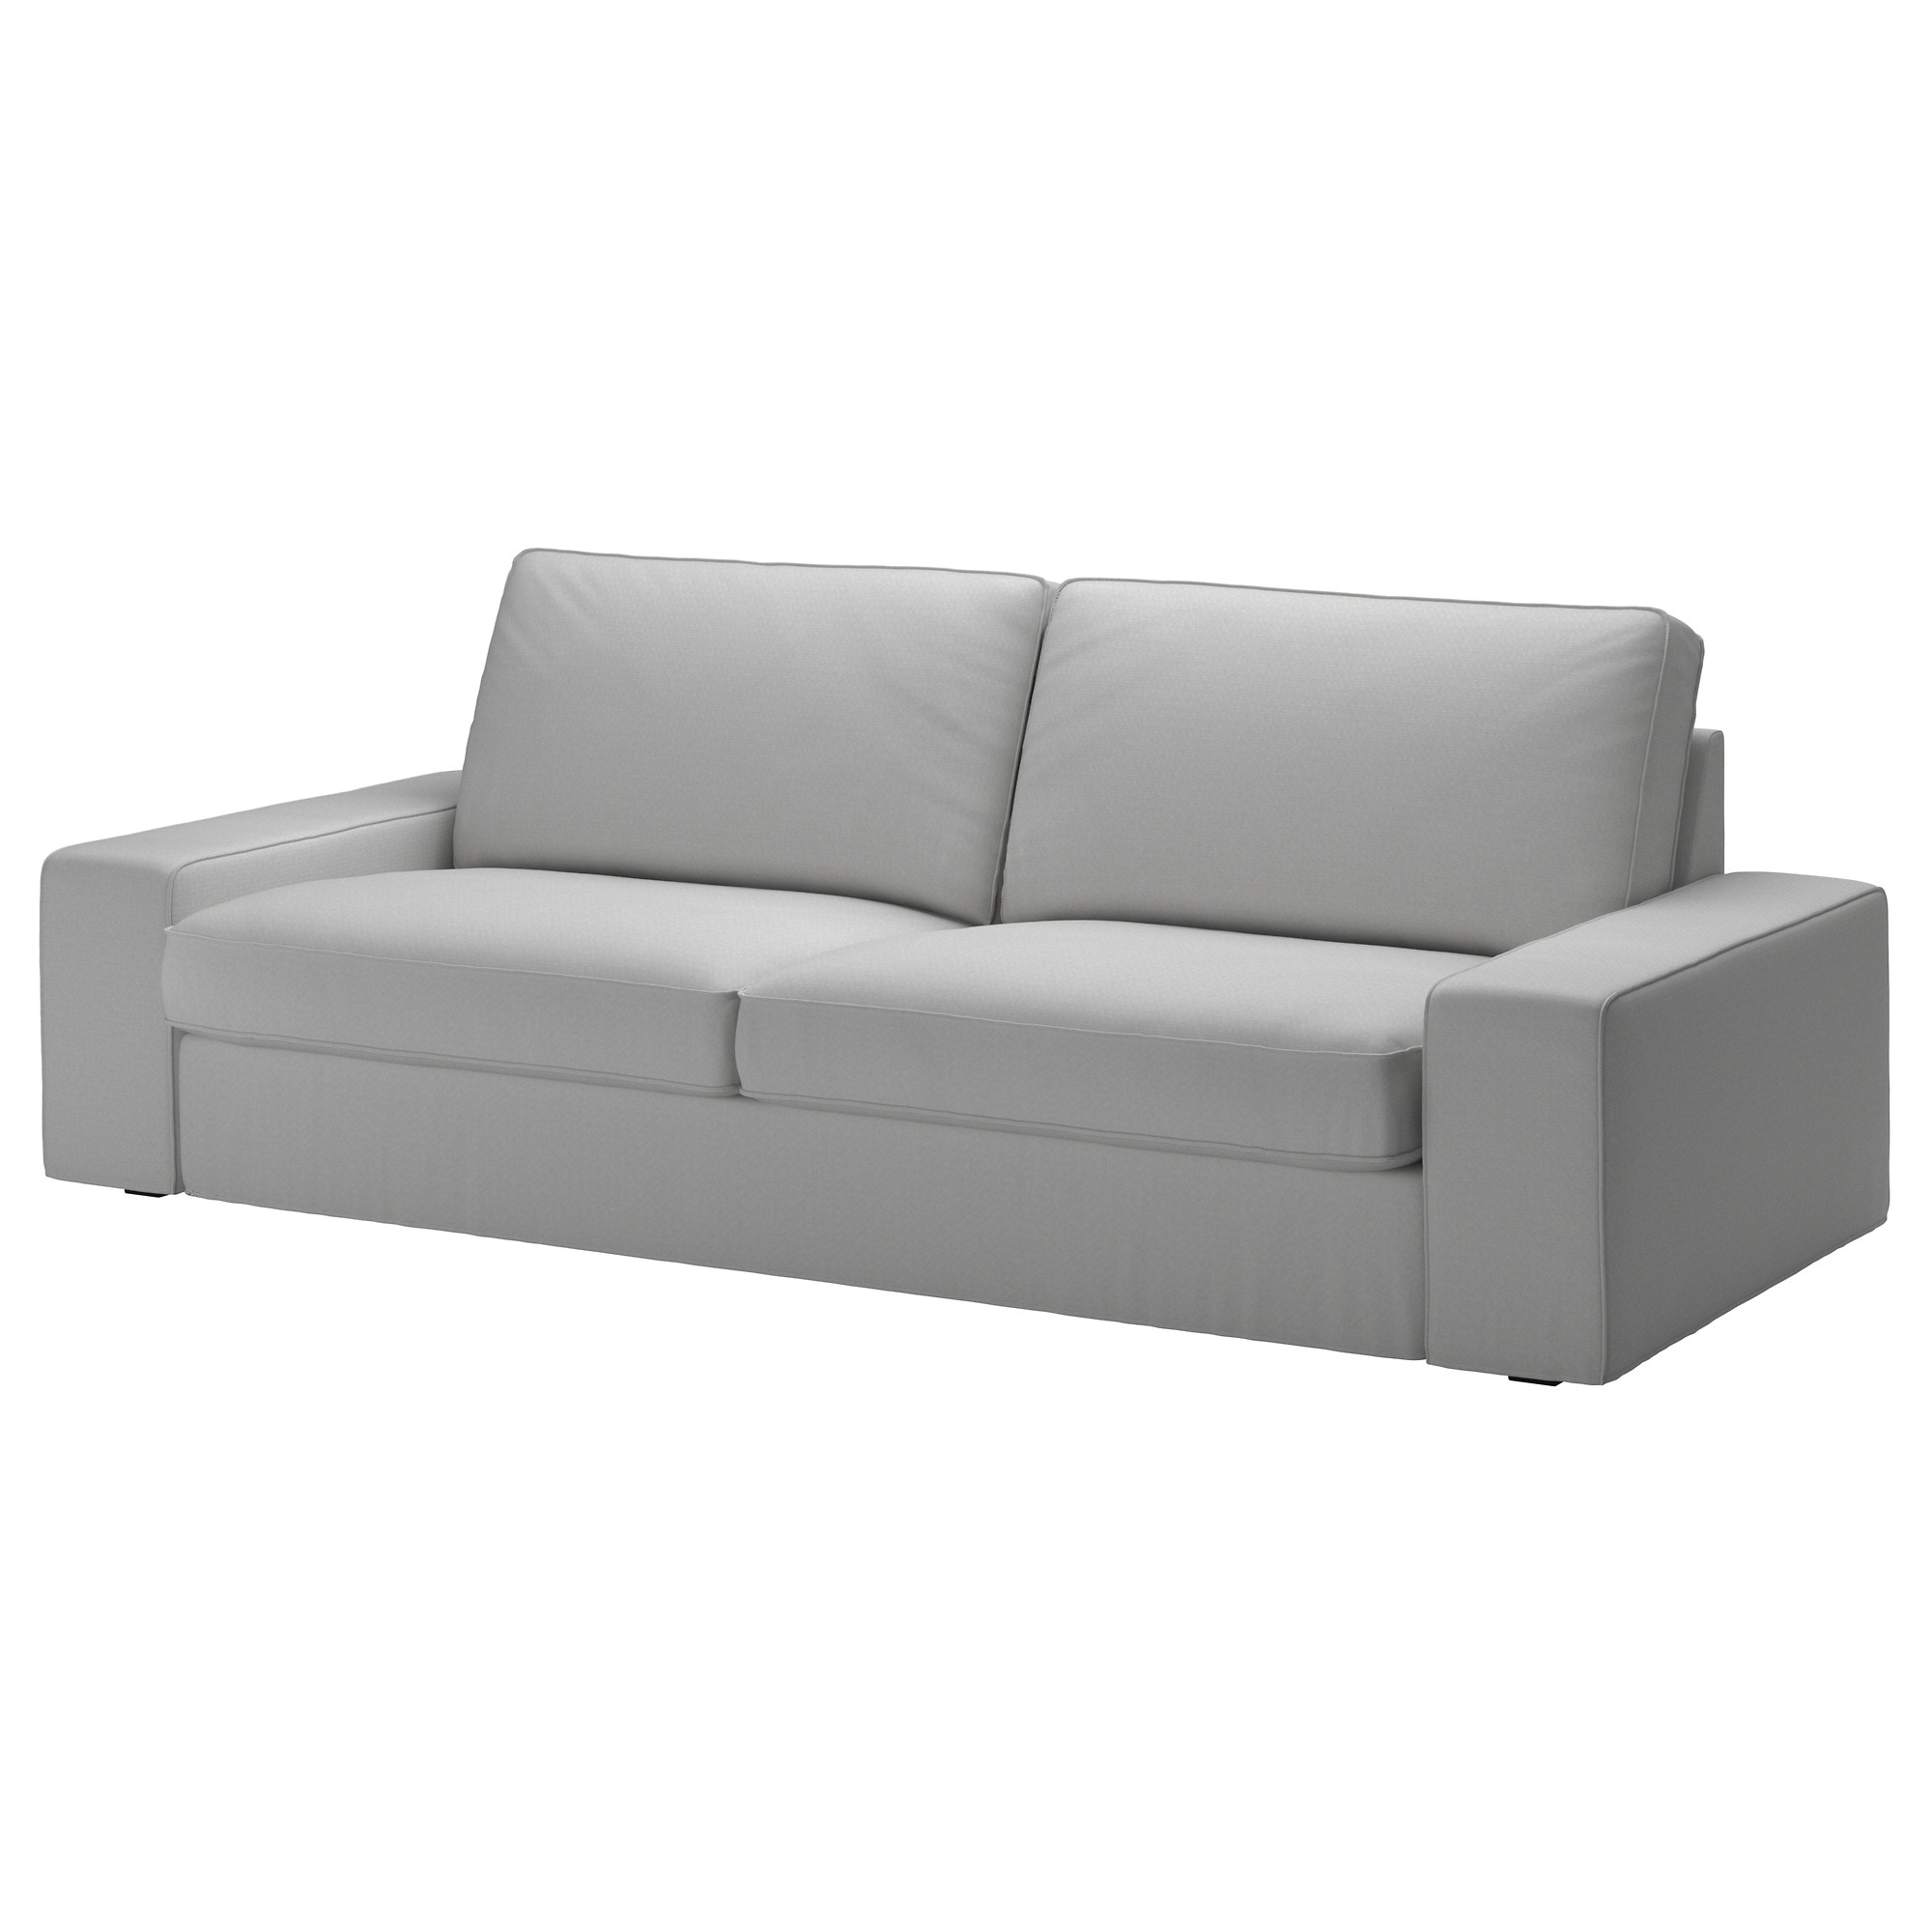 KIVIK Sofa cover Borred gray green IKEA